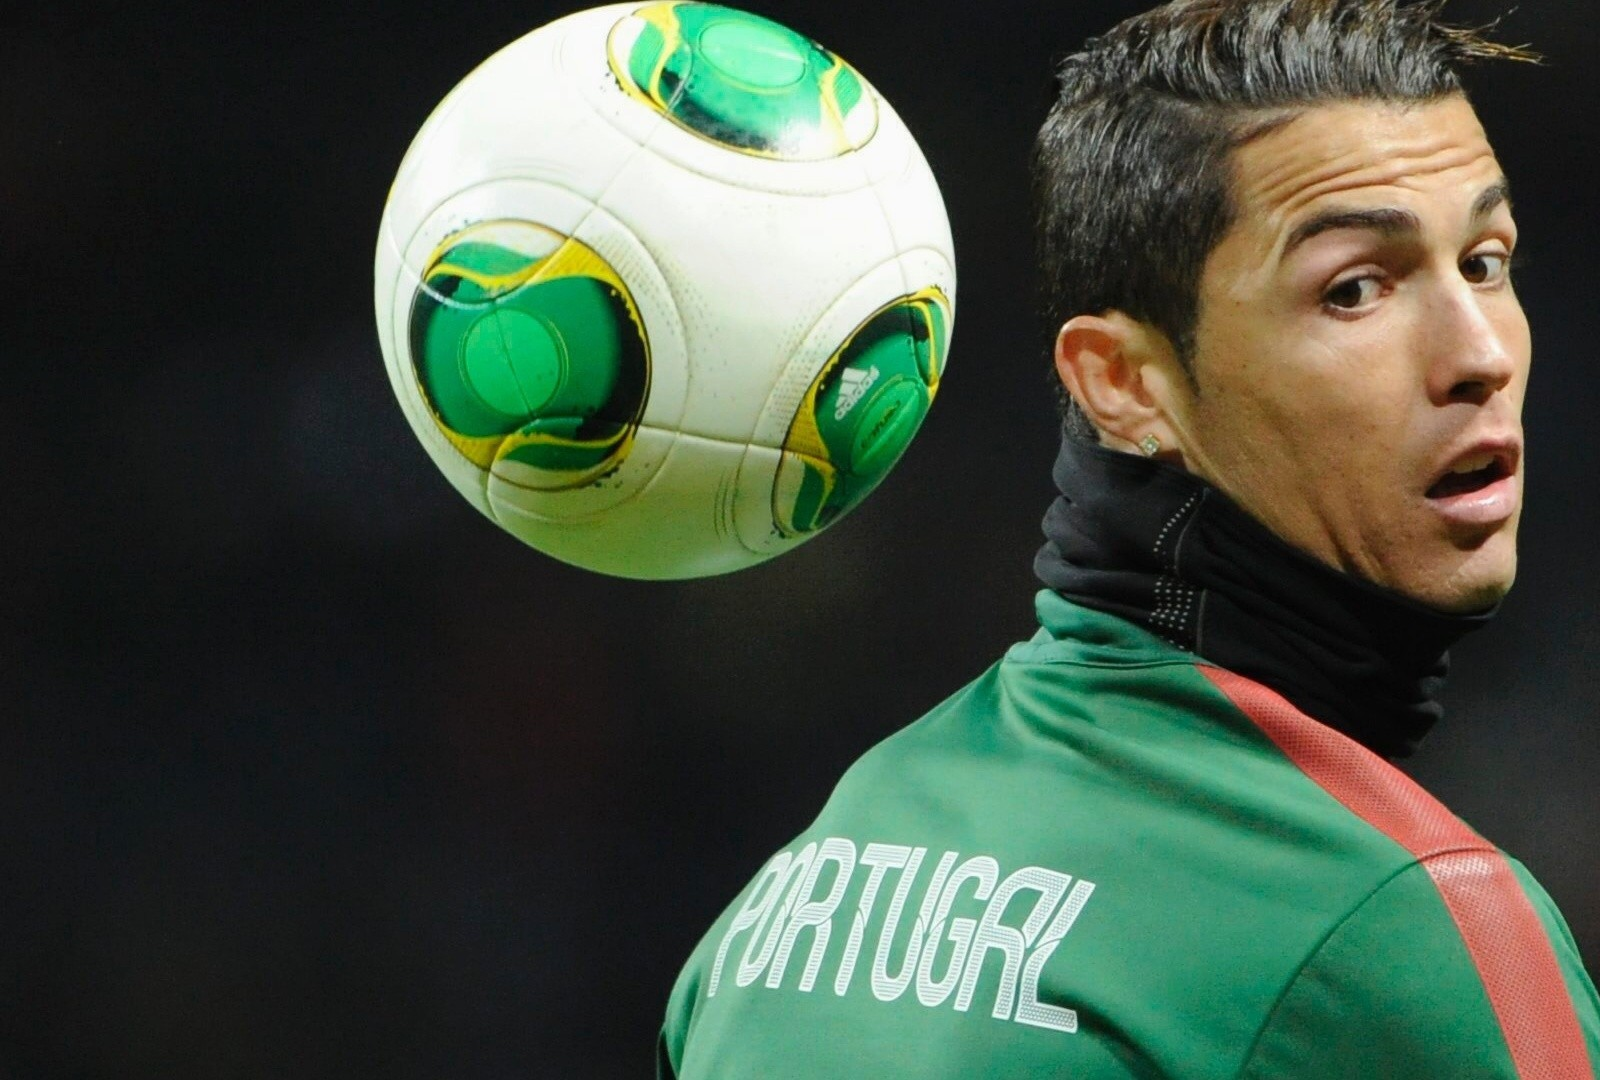 Cr7 Wallpaper Iphone Cristiano Ronaldo Portugal Practice Session Wallpaper